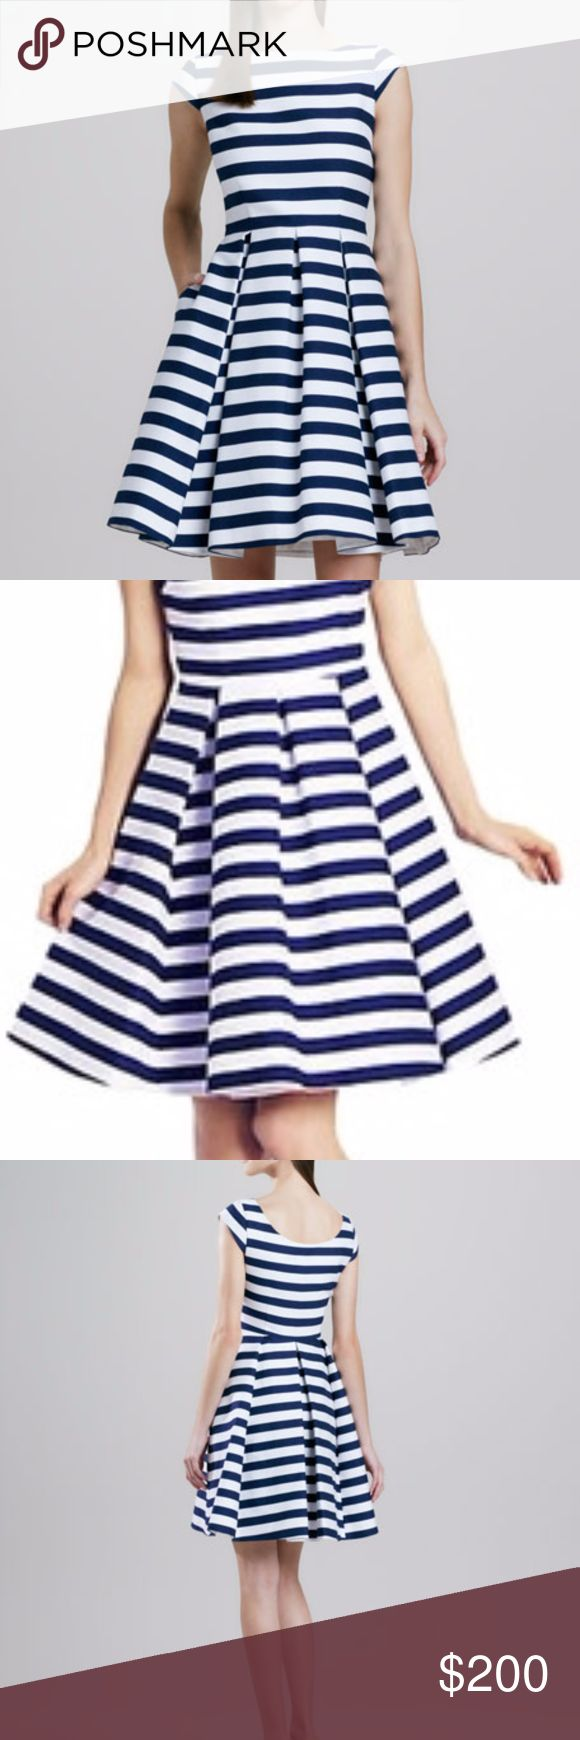 Kate Spade New York Mariella Striped Party Dress New with tags. Size 14. kate spade Dresses Mini